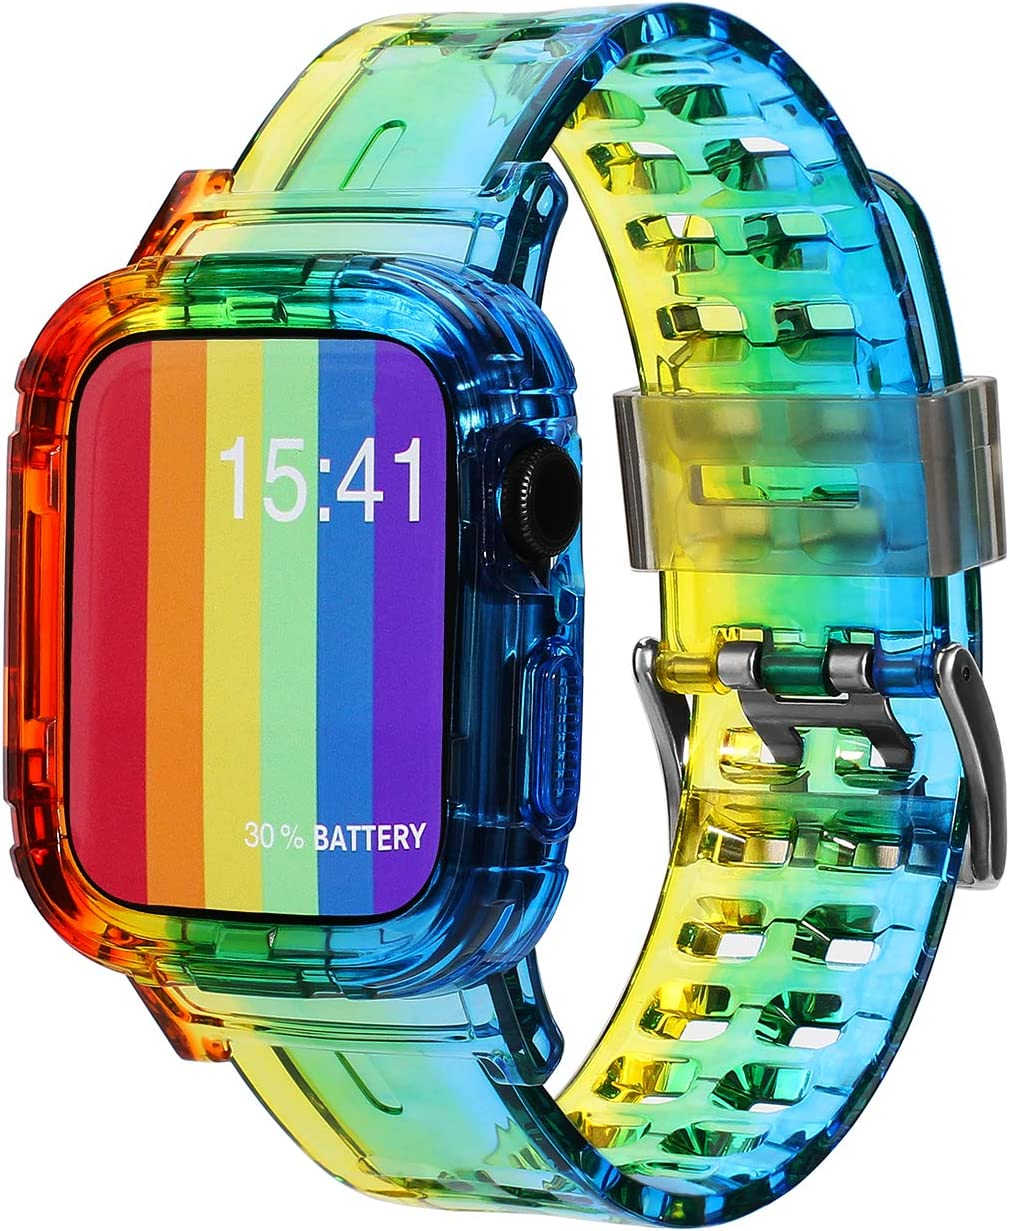 SEARME TREND Apple Watch Band 38mm 40mm 42mm 44mm with Rugged Bumper Case, Women Men Iwatch Bands Crystal Clear Sport Wristband Compatible for Apple Watch Series 6 Band and Series 5 4 3 2 1 SE